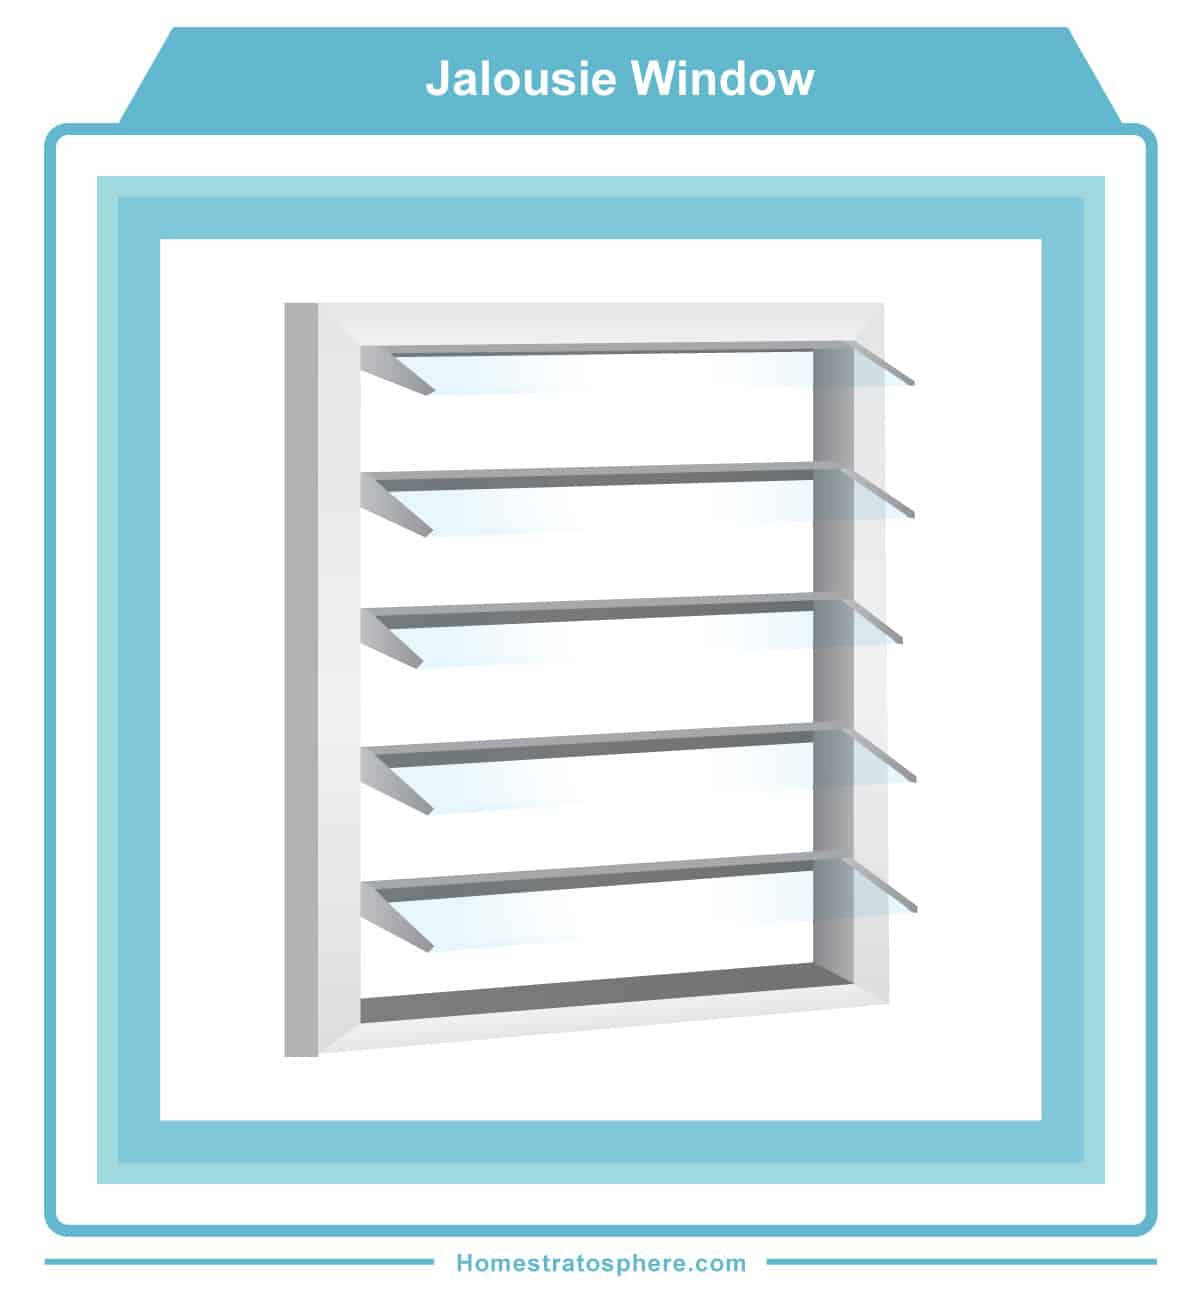 Jalousie Style Window Diagram